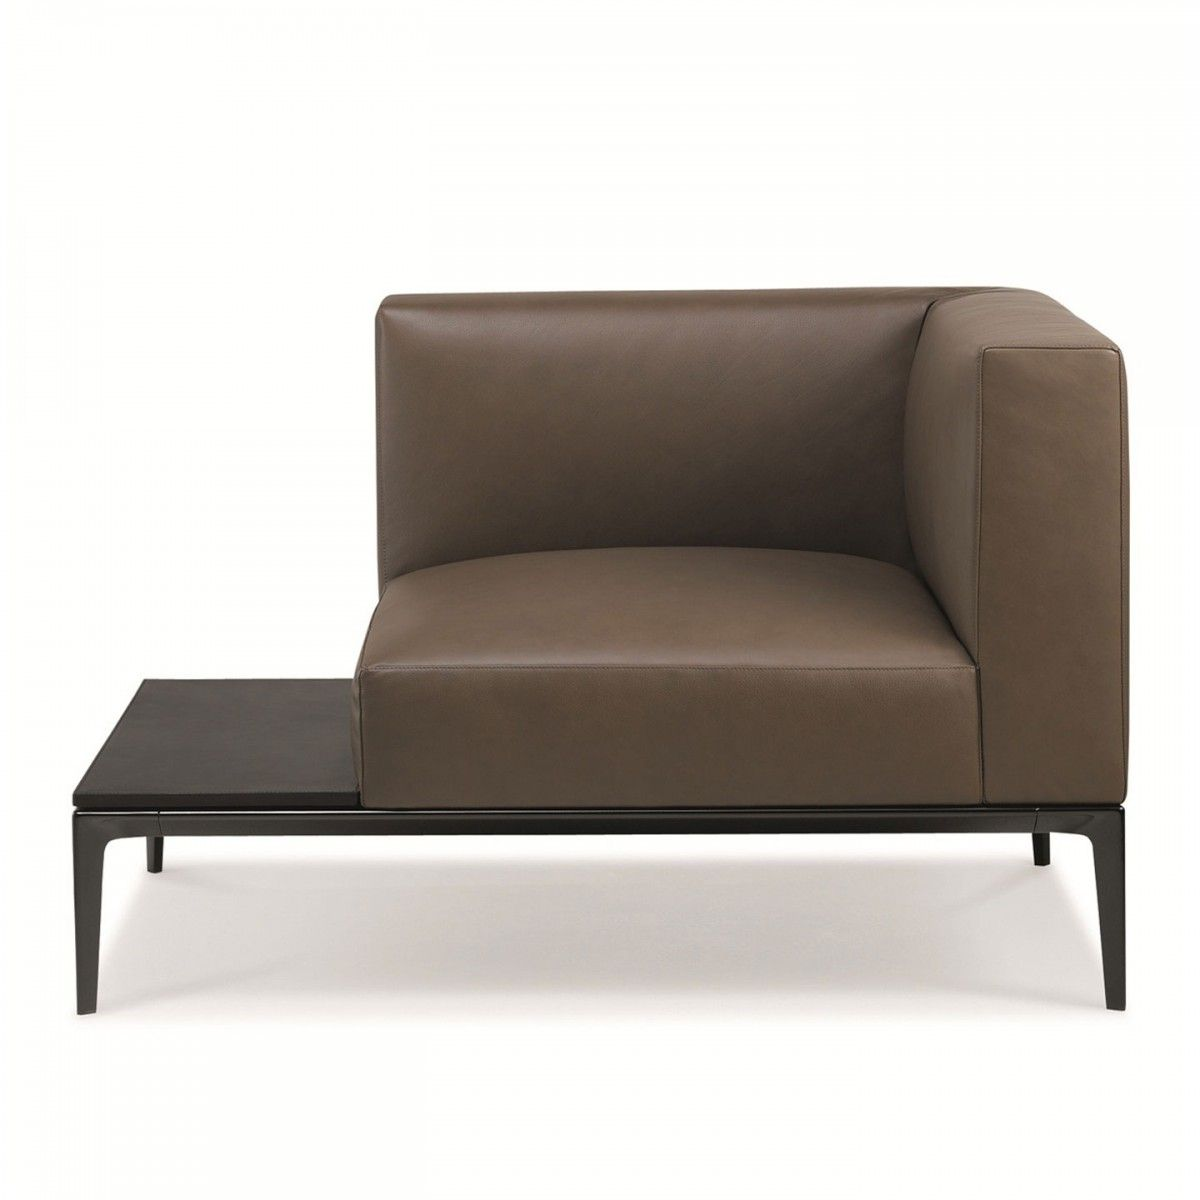 Jaan Chair With Board Eoos Walter Knoll Easy Chairs Pinterest # Meble Narcisse